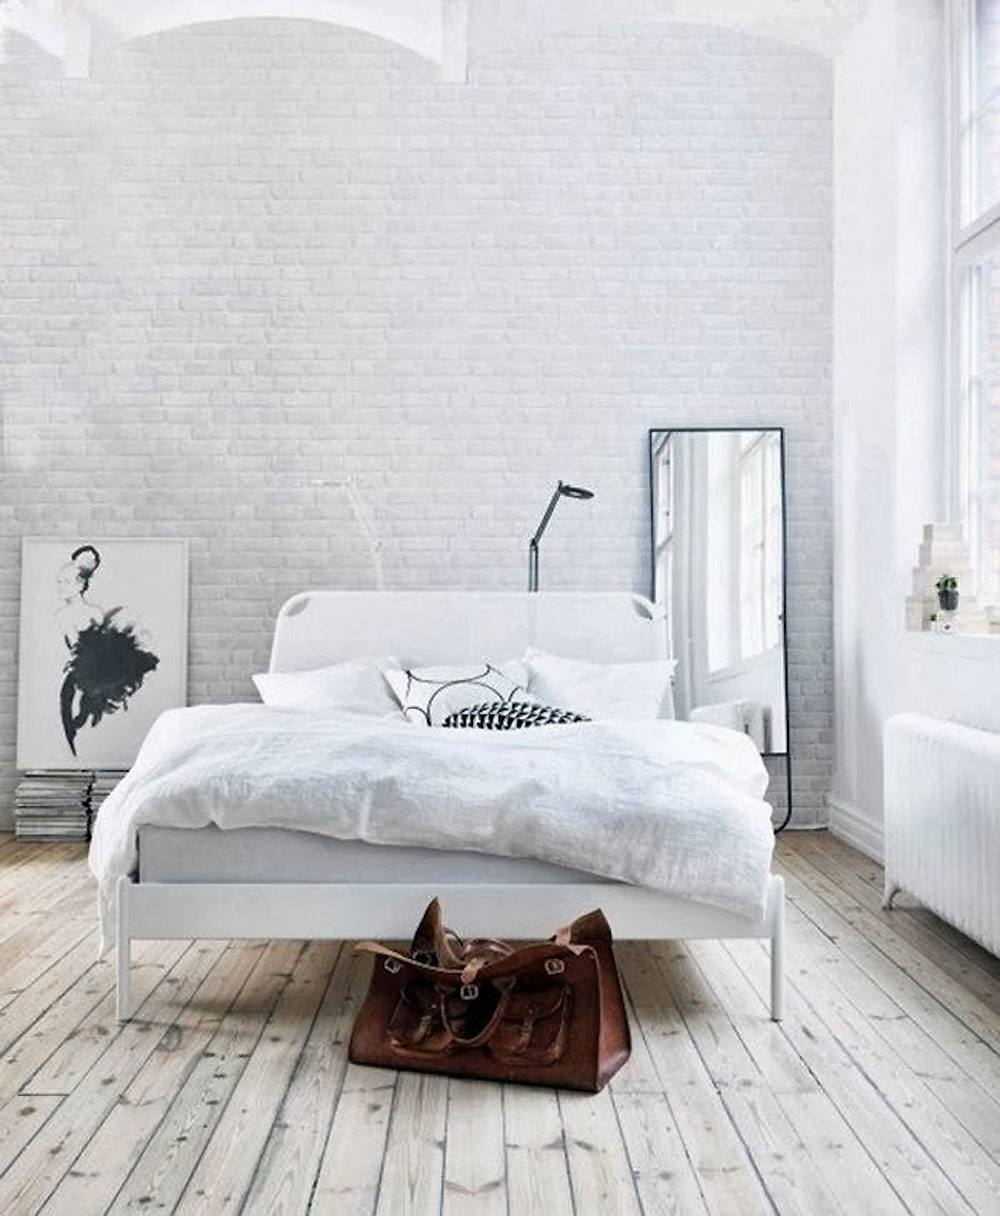 Minimalist Bedroom: 40 Minimalist Bedroom Ideas